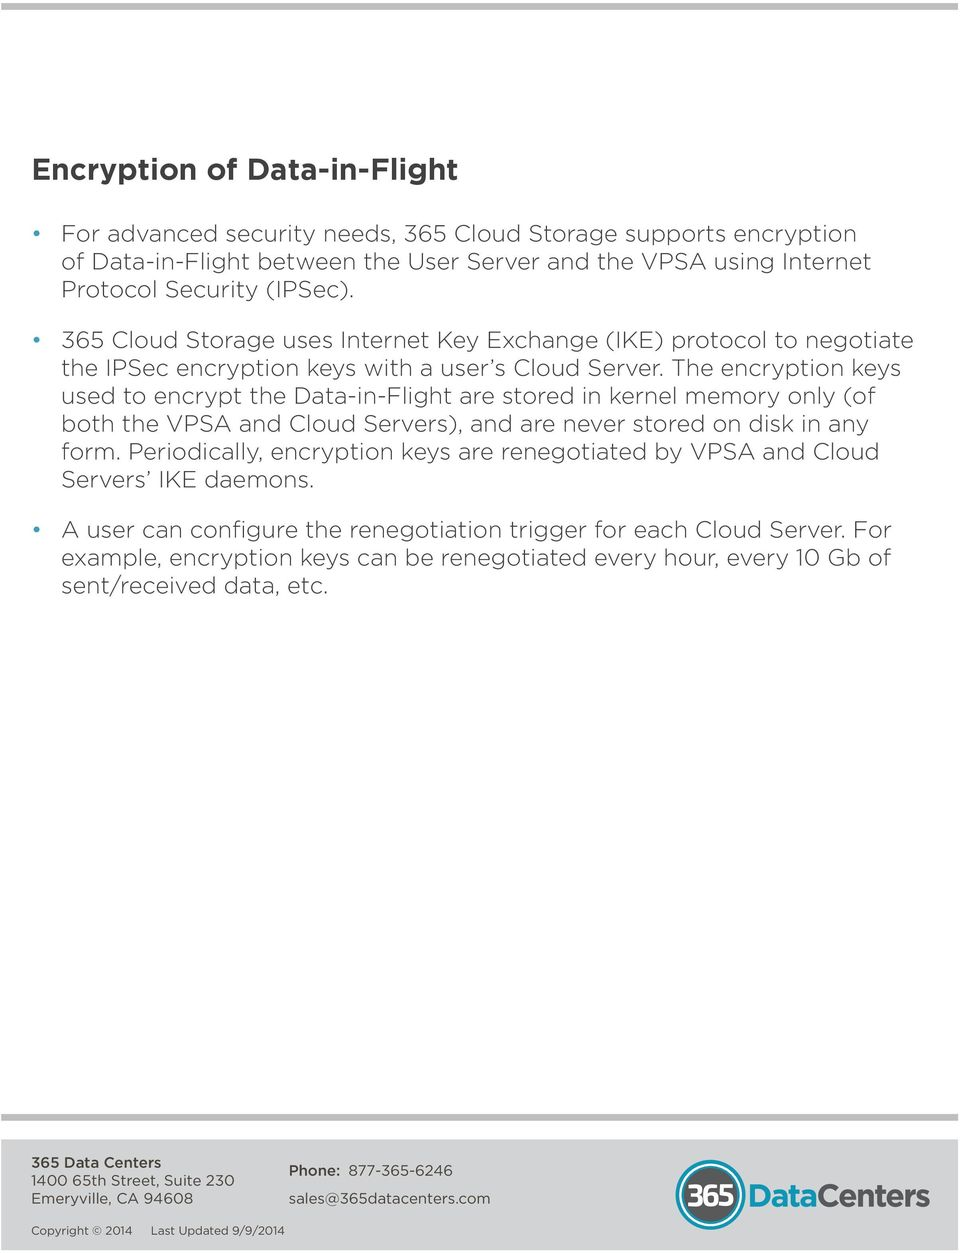 The encryption keys used to encrypt the Data-in-Flight are stored in kernel memory only (of both the VPSA and Cloud Servers), and are never stored on disk in any form.